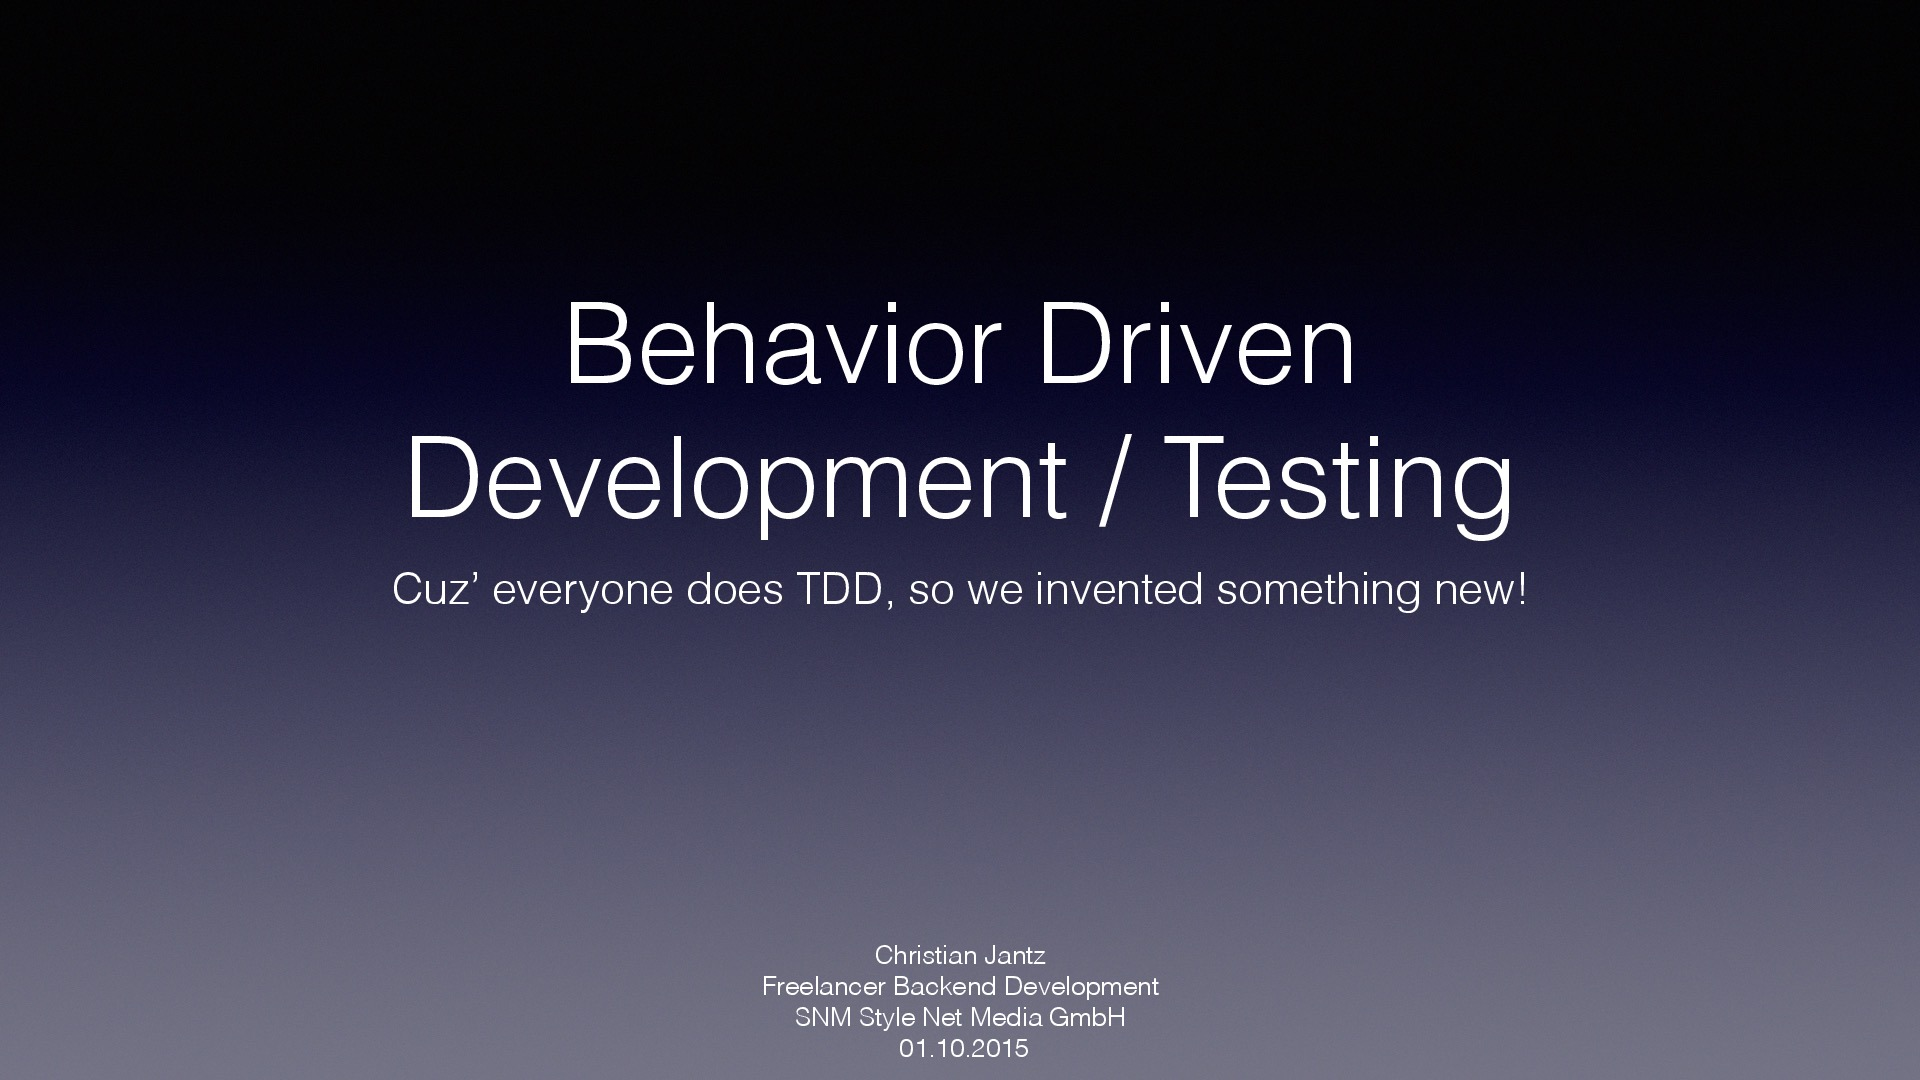 Behavior Driven Development & Testing